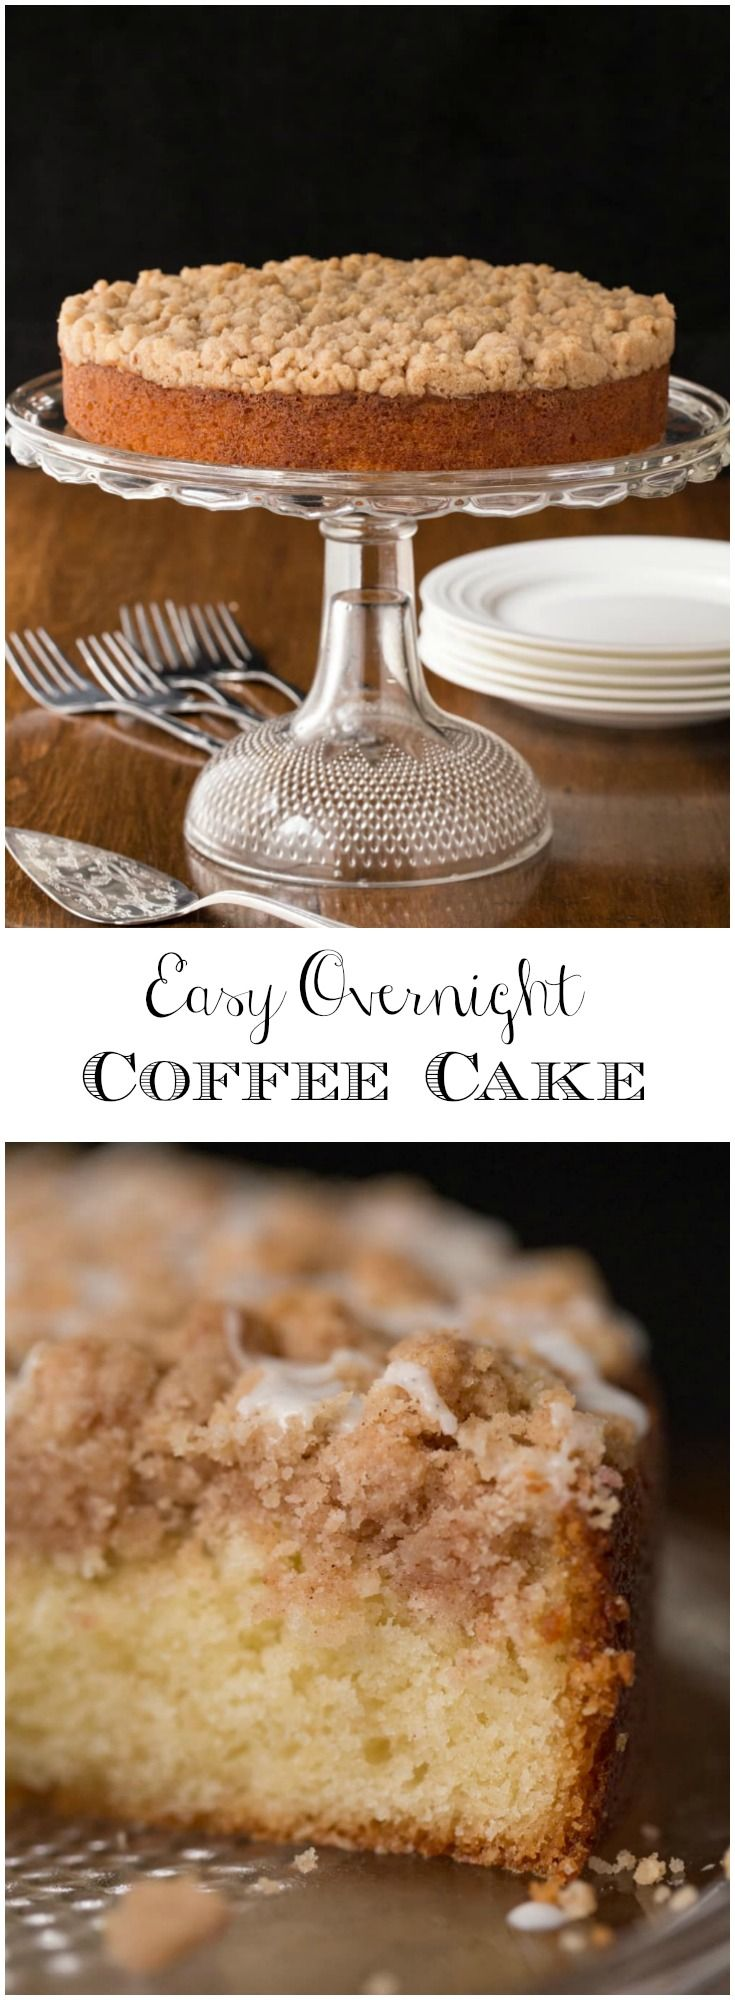 Easy Overnight Coffee Cake Recipe Coffee Cake Easy Coffee Cake Recipes Baking